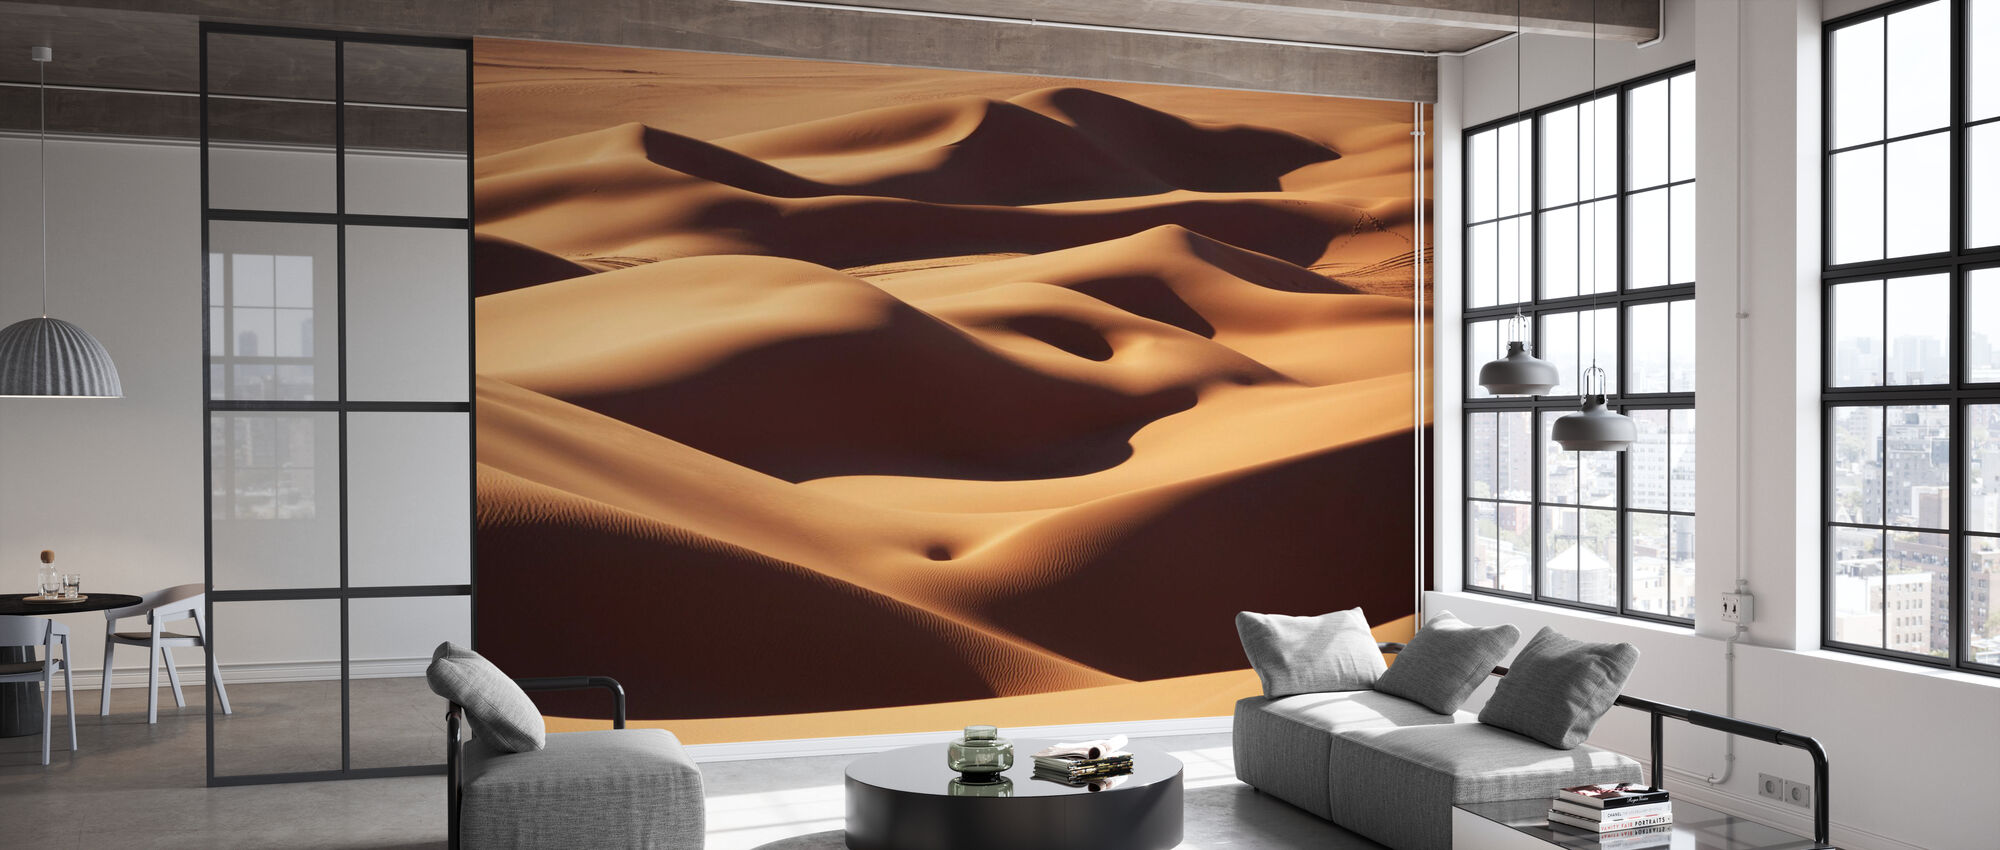 Sand Landscape - Wallpaper - Office